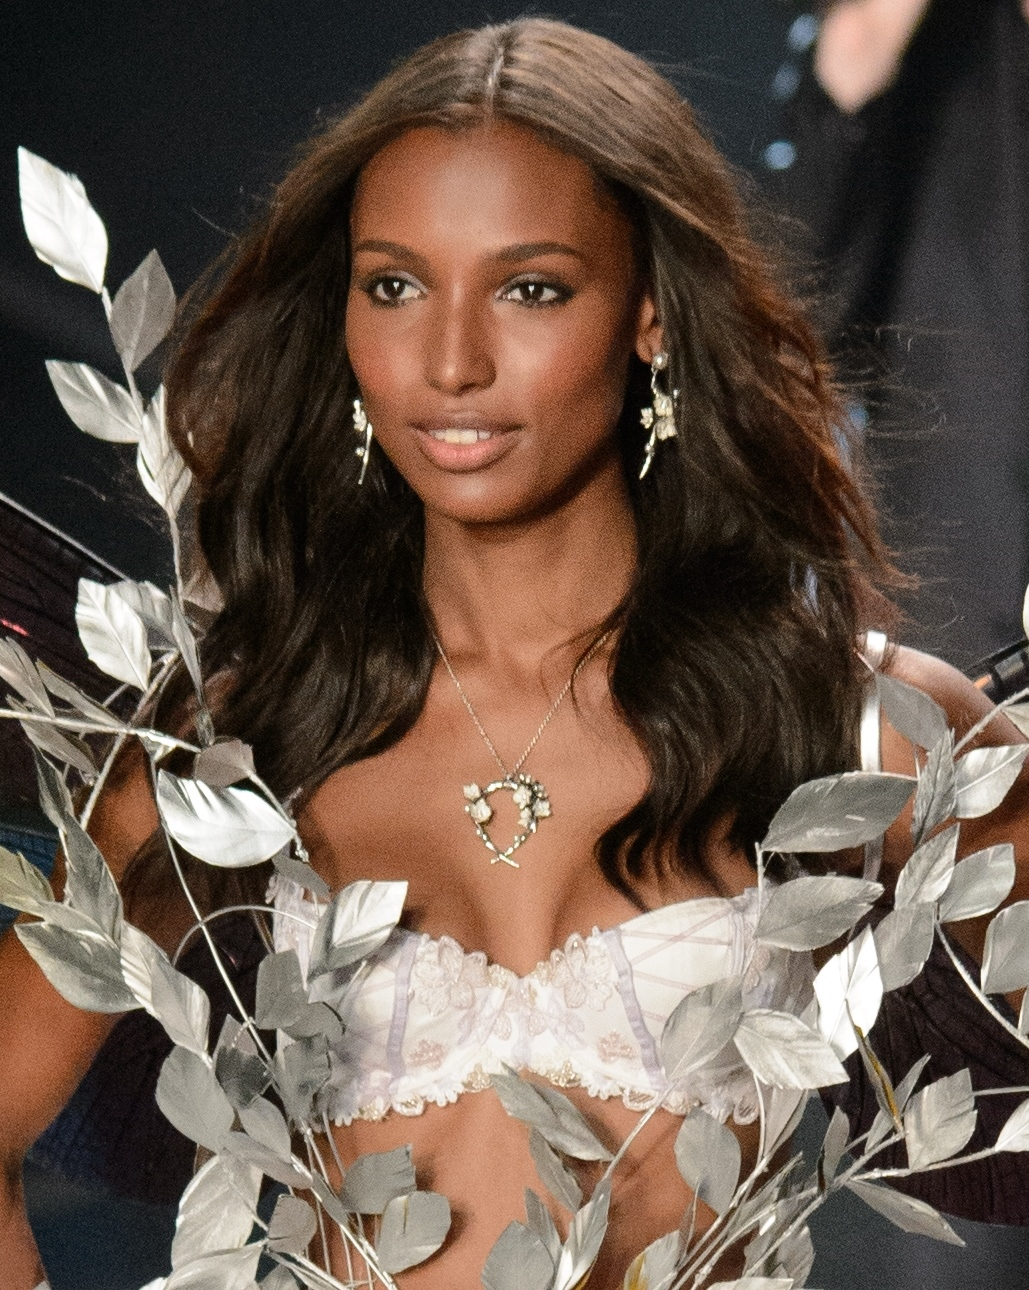 The 29-year old daughter of father (?) and mother(?) Jasmine Tookes in 2020 photo. Jasmine Tookes earned a million dollar salary - leaving the net worth at 0.5 million in 2020